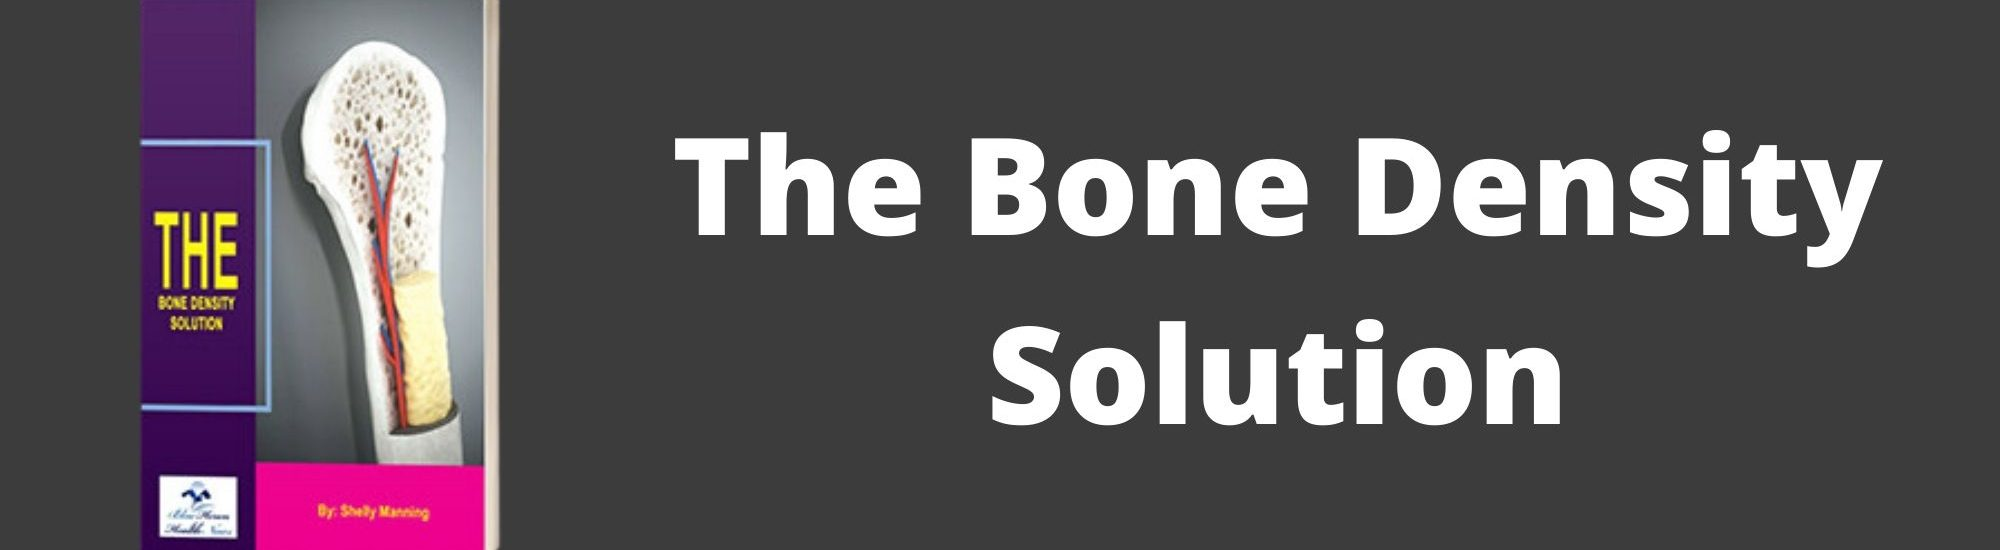 The Bone Density Solution Review – Important Facts Exposed!